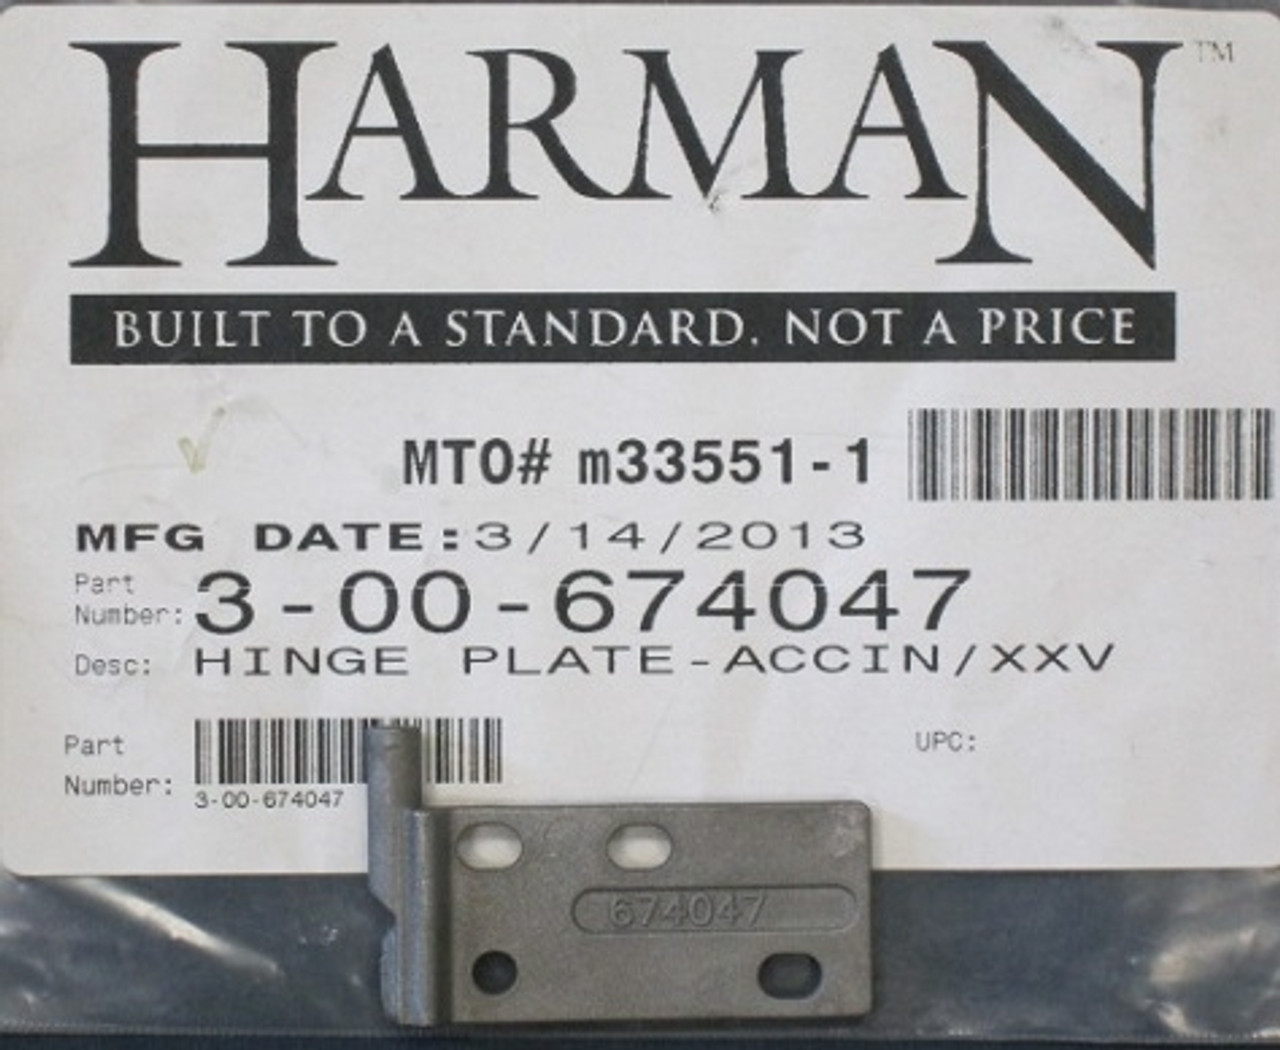 Harman Accentra Insert And Xxv Hinge Plate 3 00 674047